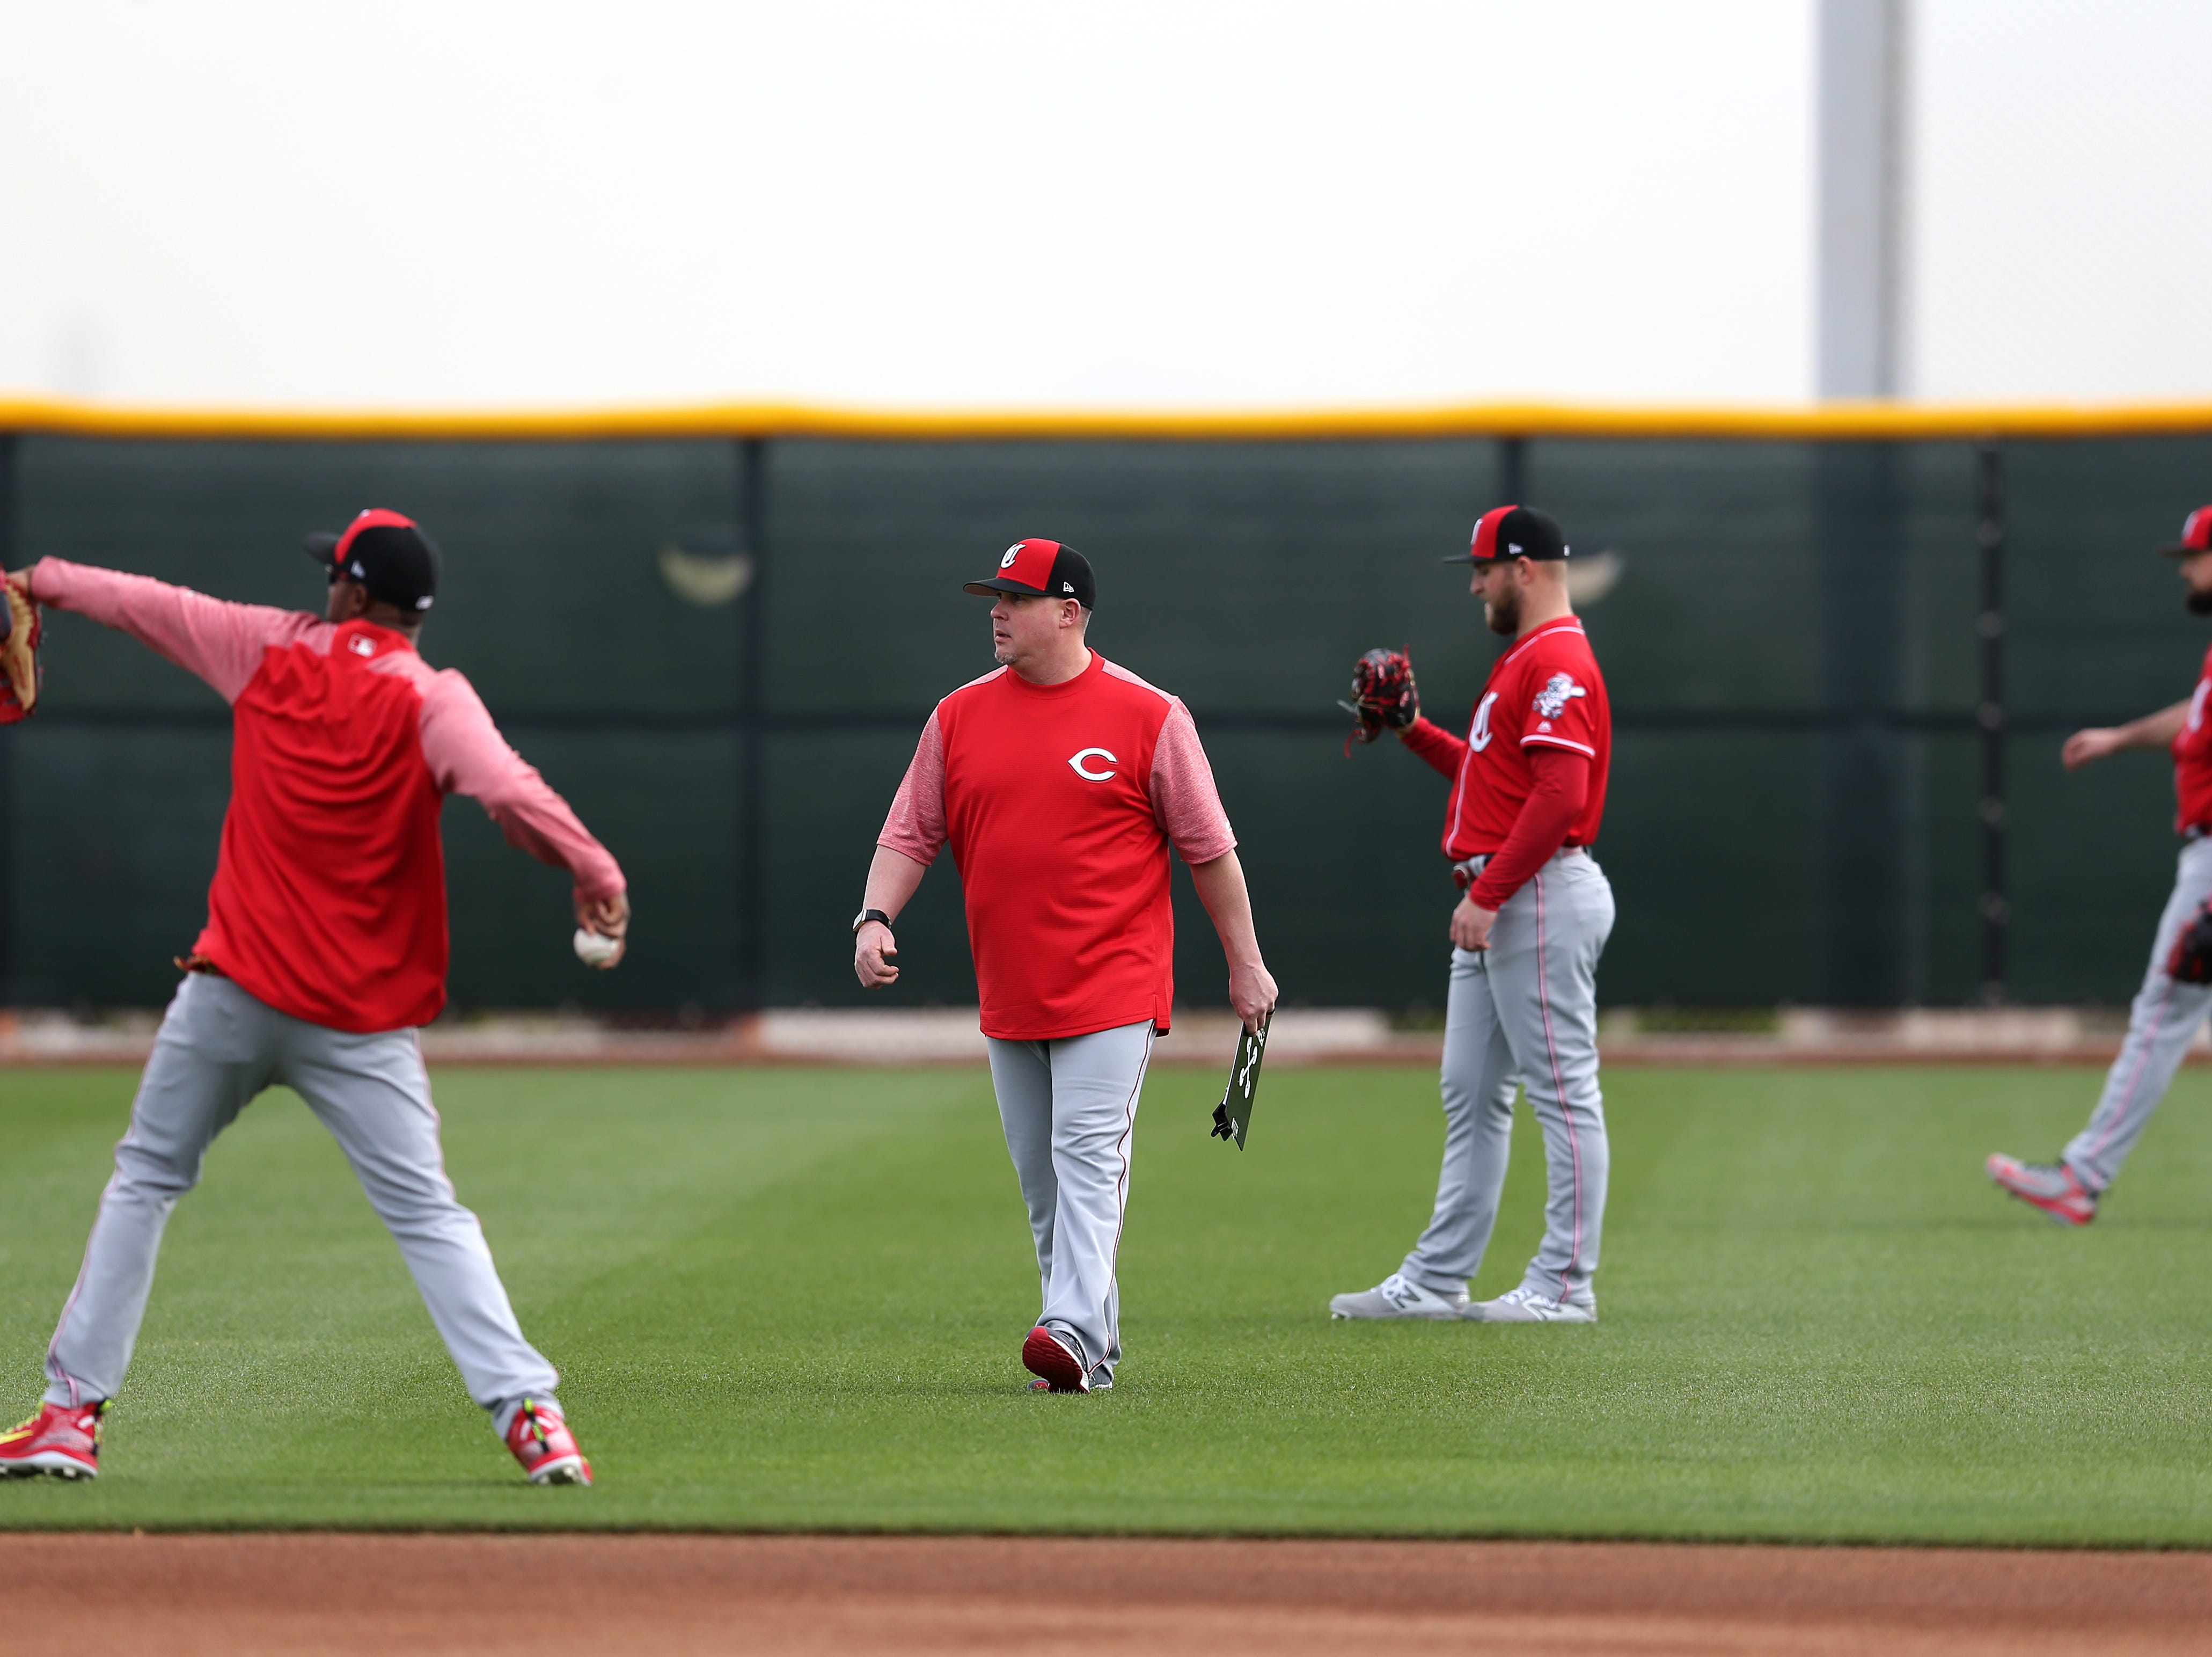 Cincinnati Reds pitching coach Derek Johnson observes as pitchers long toss, Wednesday, Feb. 13, 2019, at the Cincinnati Reds spring training facility in Goodyear, Arizona.